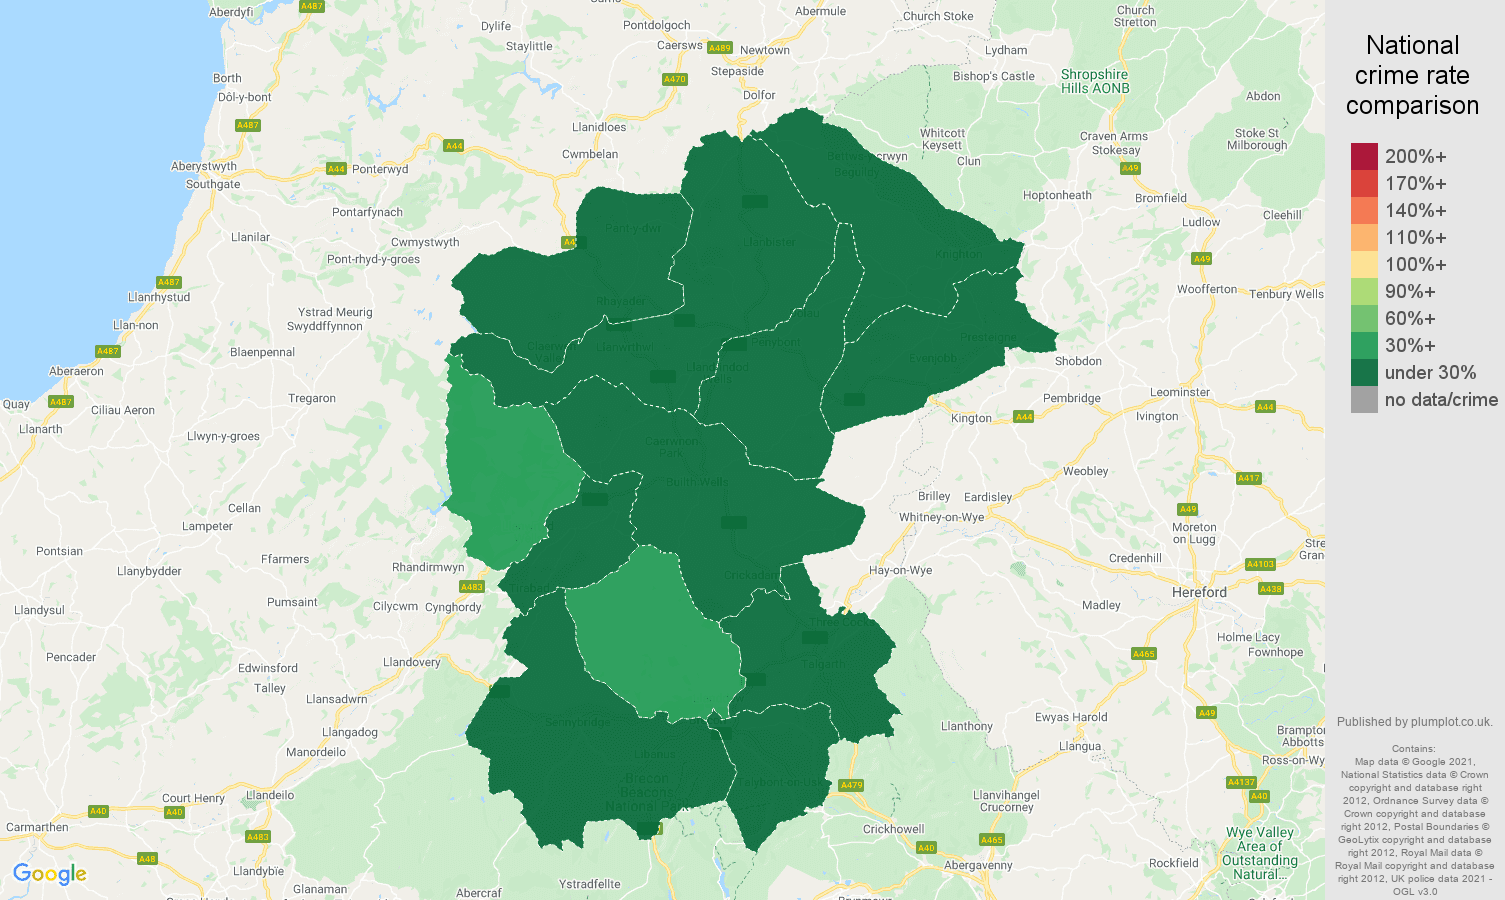 Llandrindod Wells vehicle crime rate comparison map